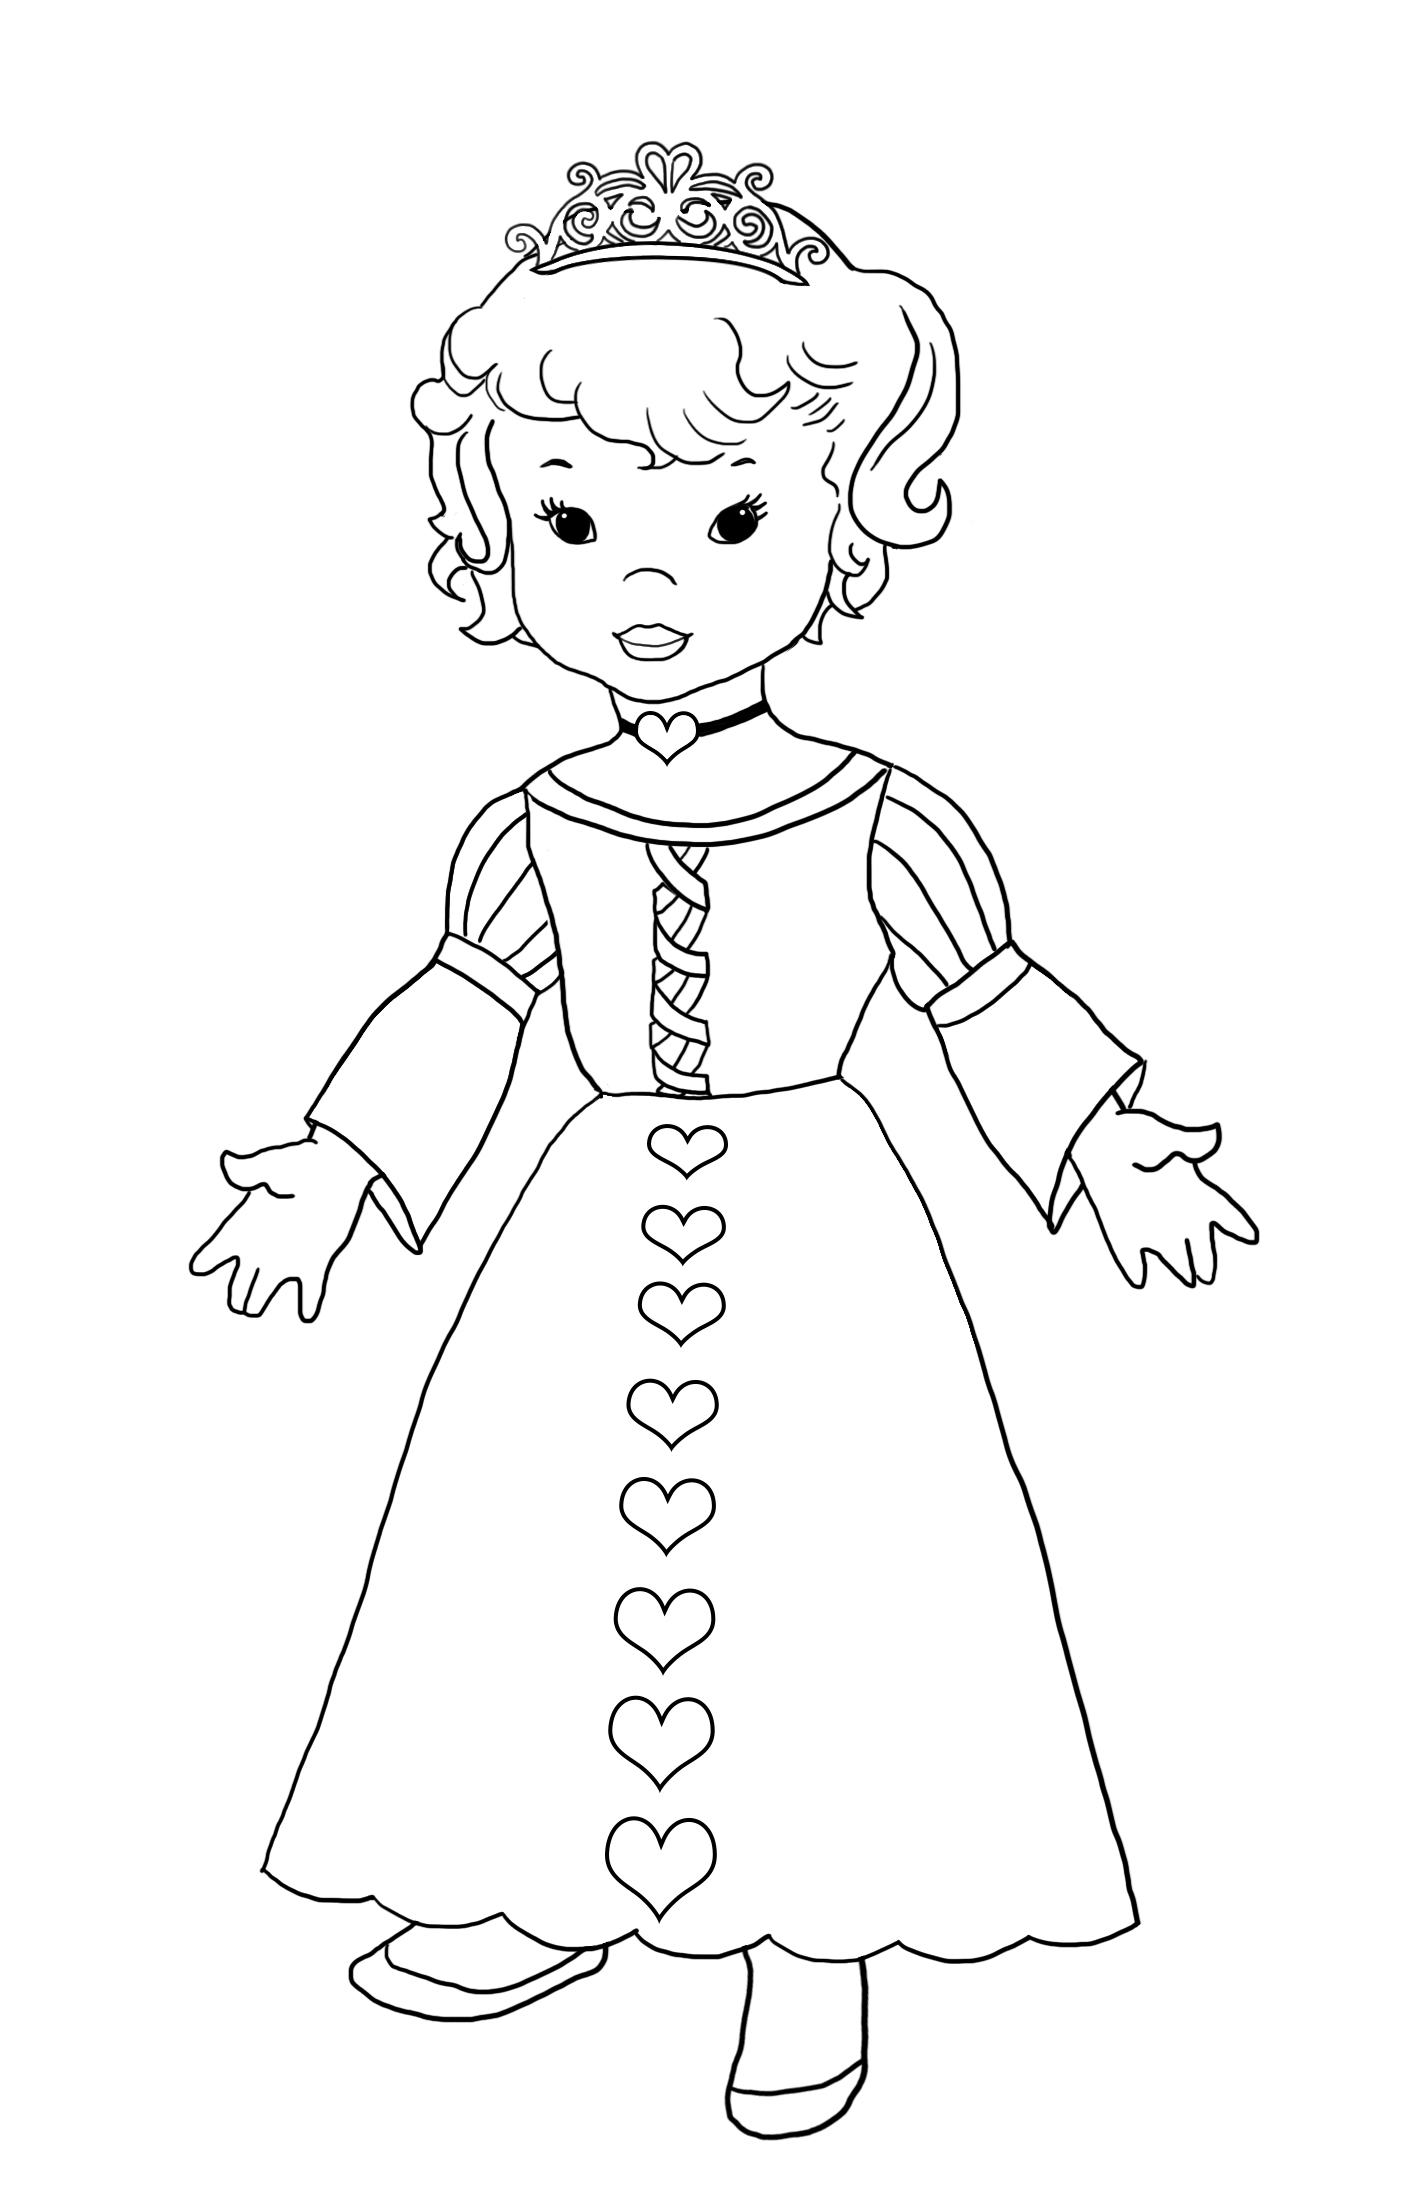 princess with dress with hearts